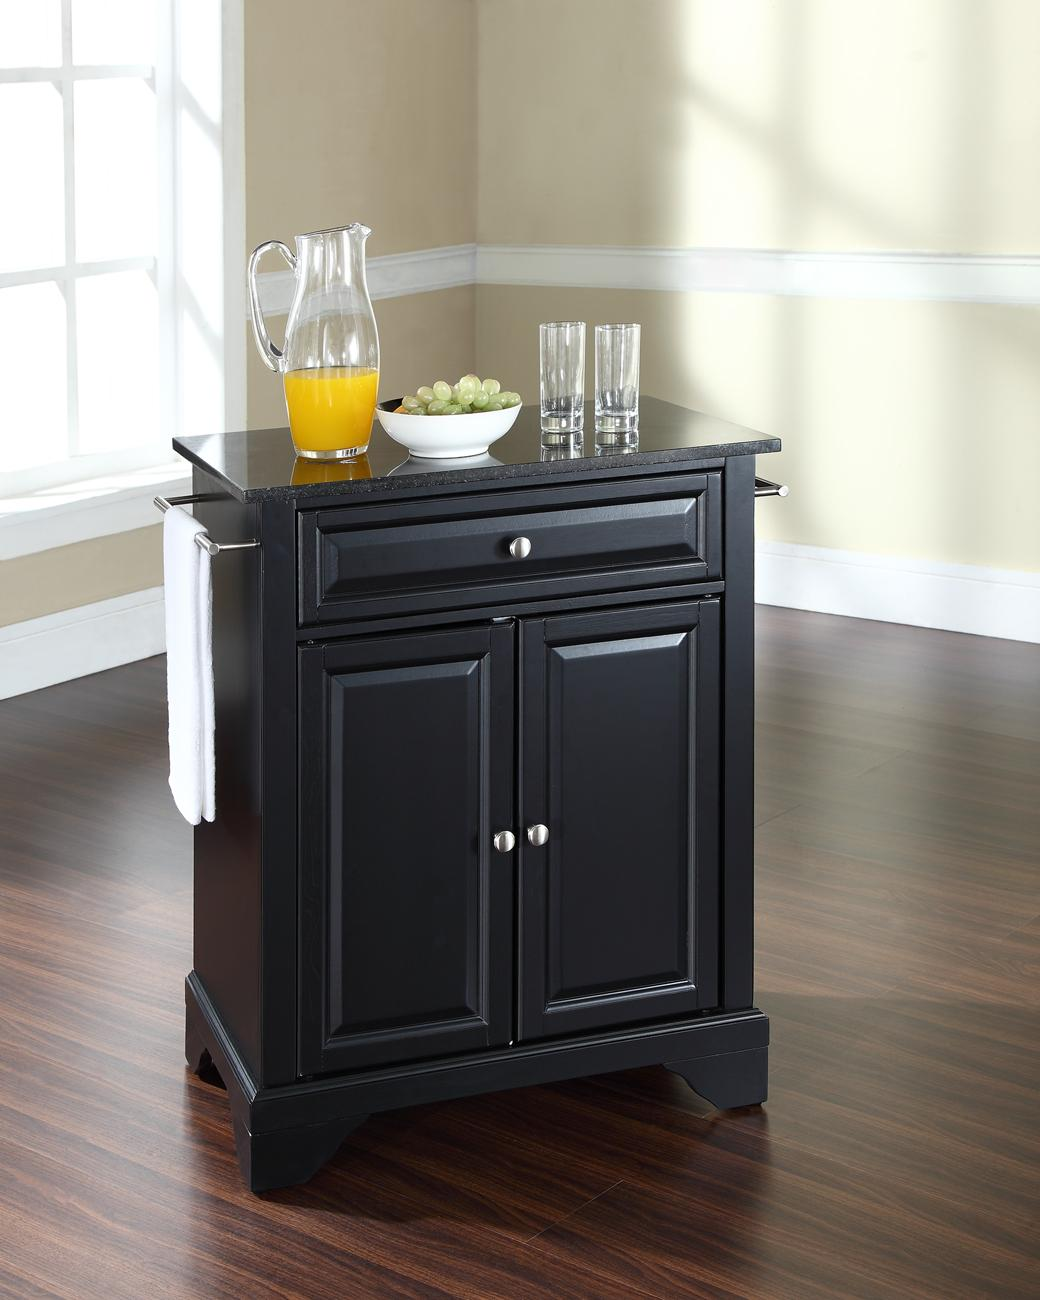 Crosley LaFayette Portable Kitchen Island By OJ Commerce